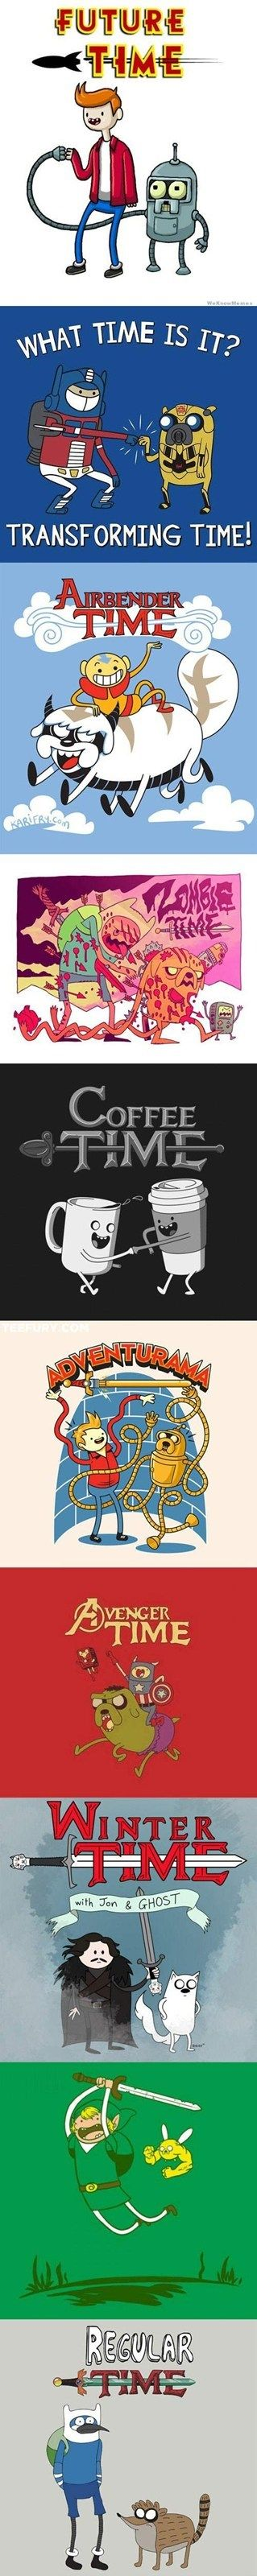 Awesome Time - Adventure Time Crossovers